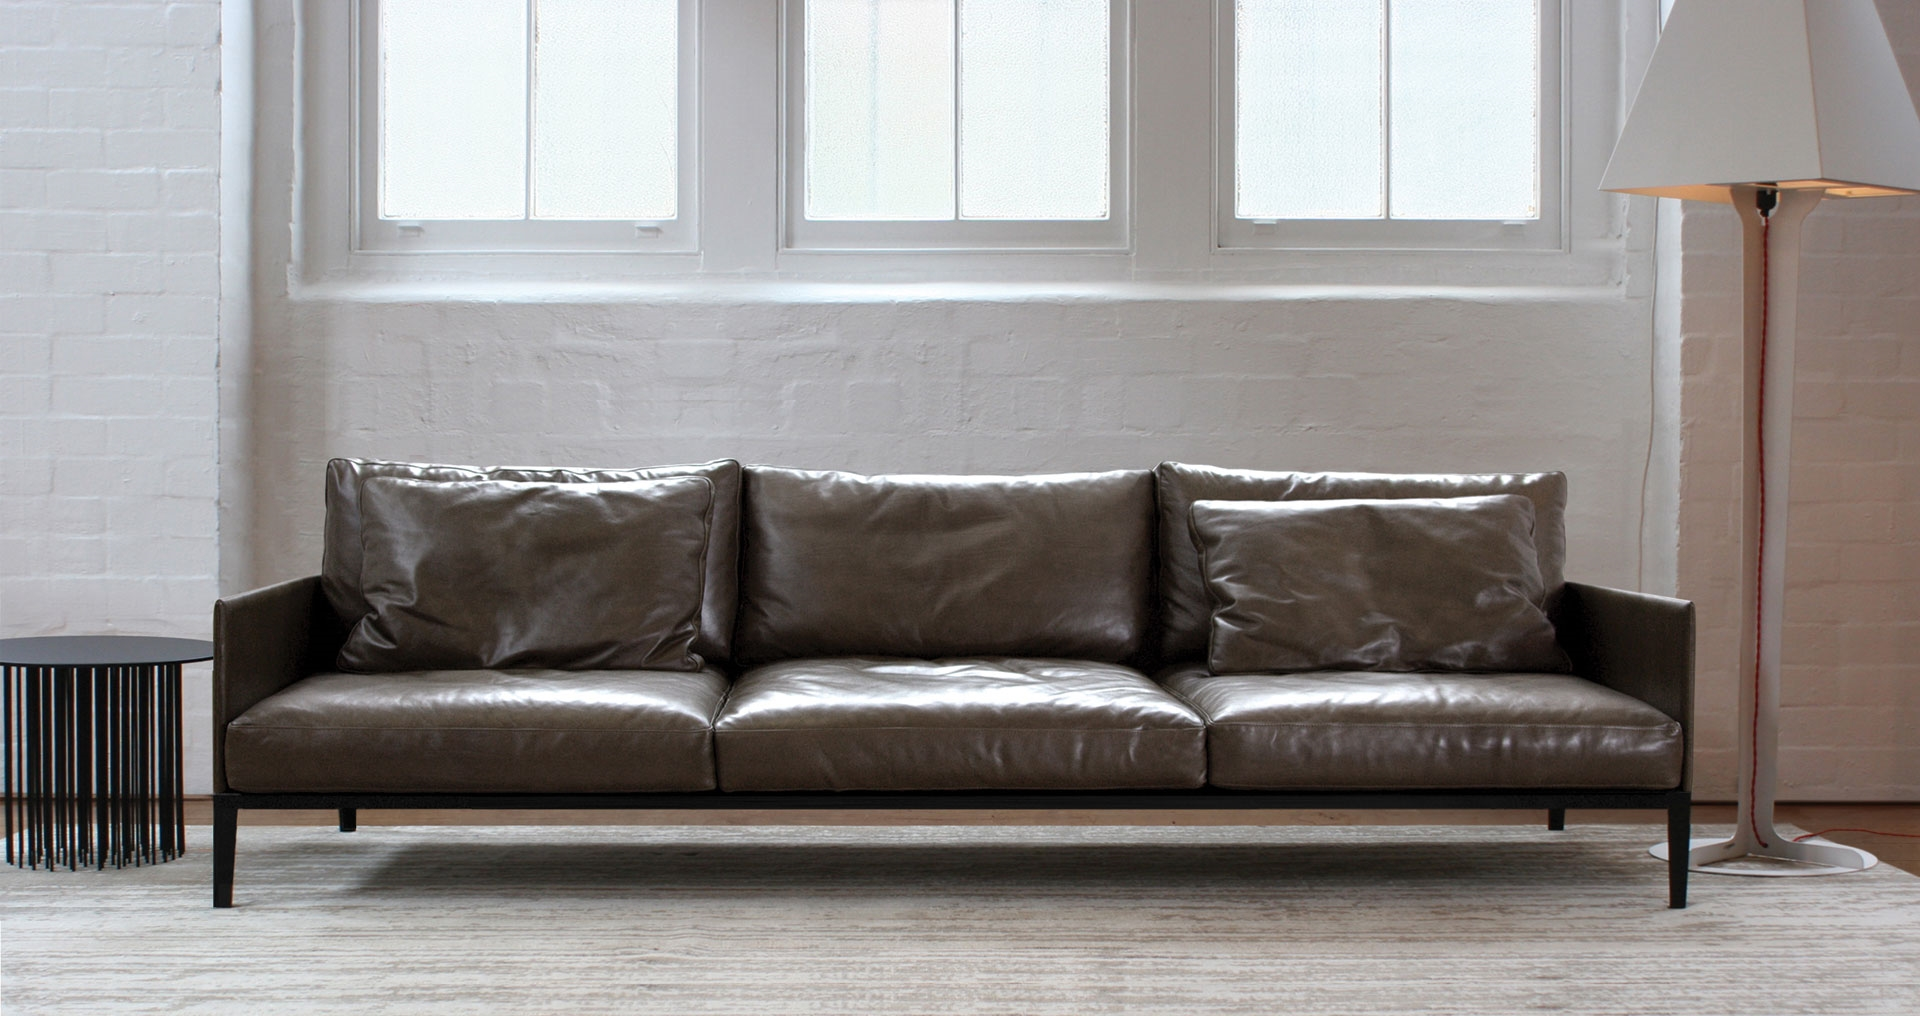 Liaison Sofa for  Nonn